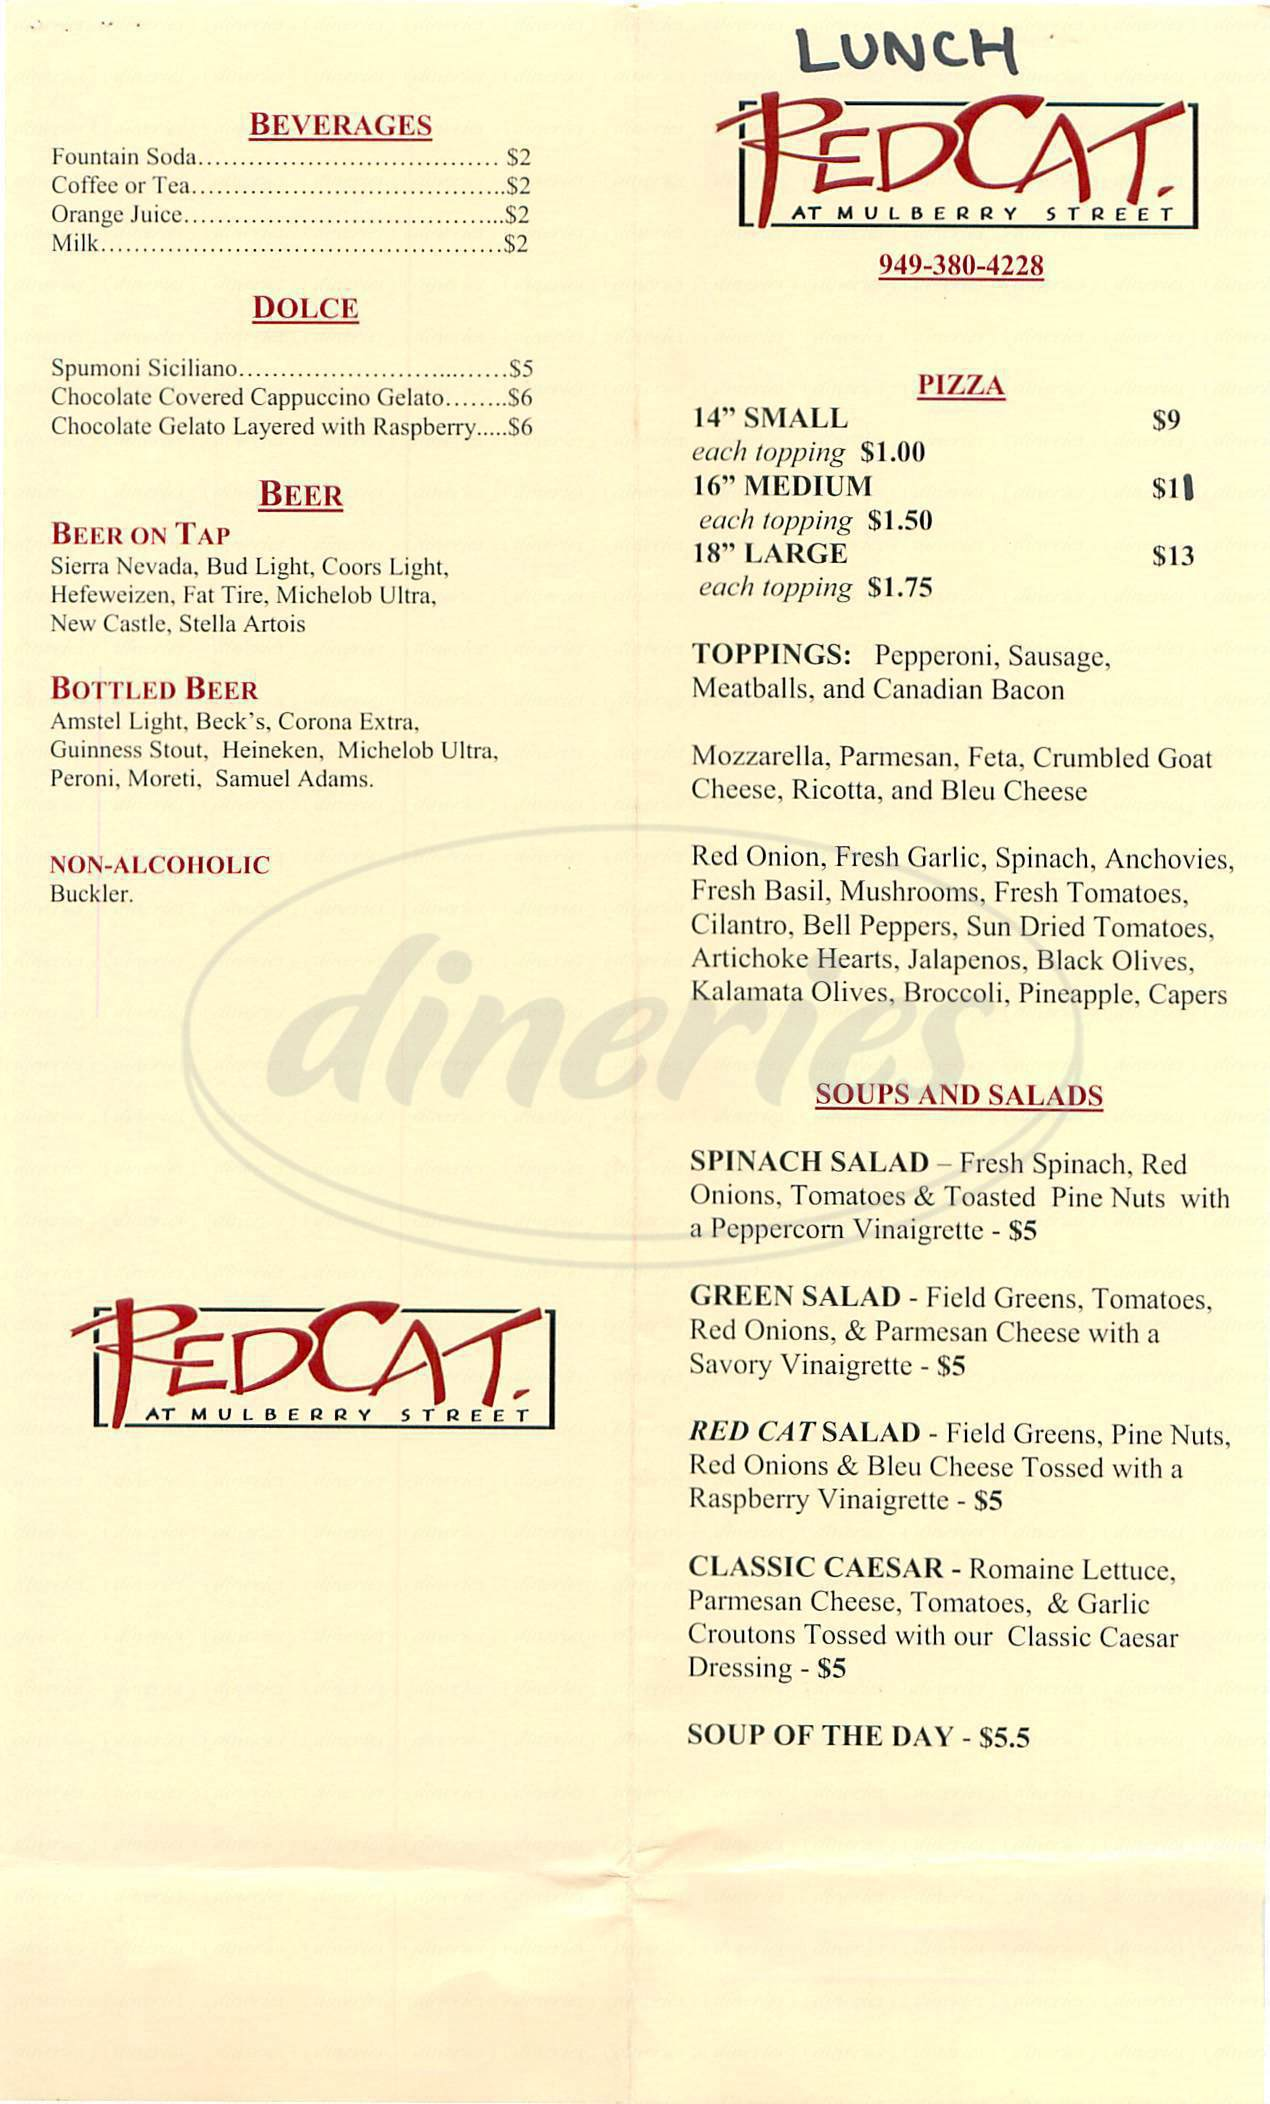 menu for Red Cat at Mulberry Street